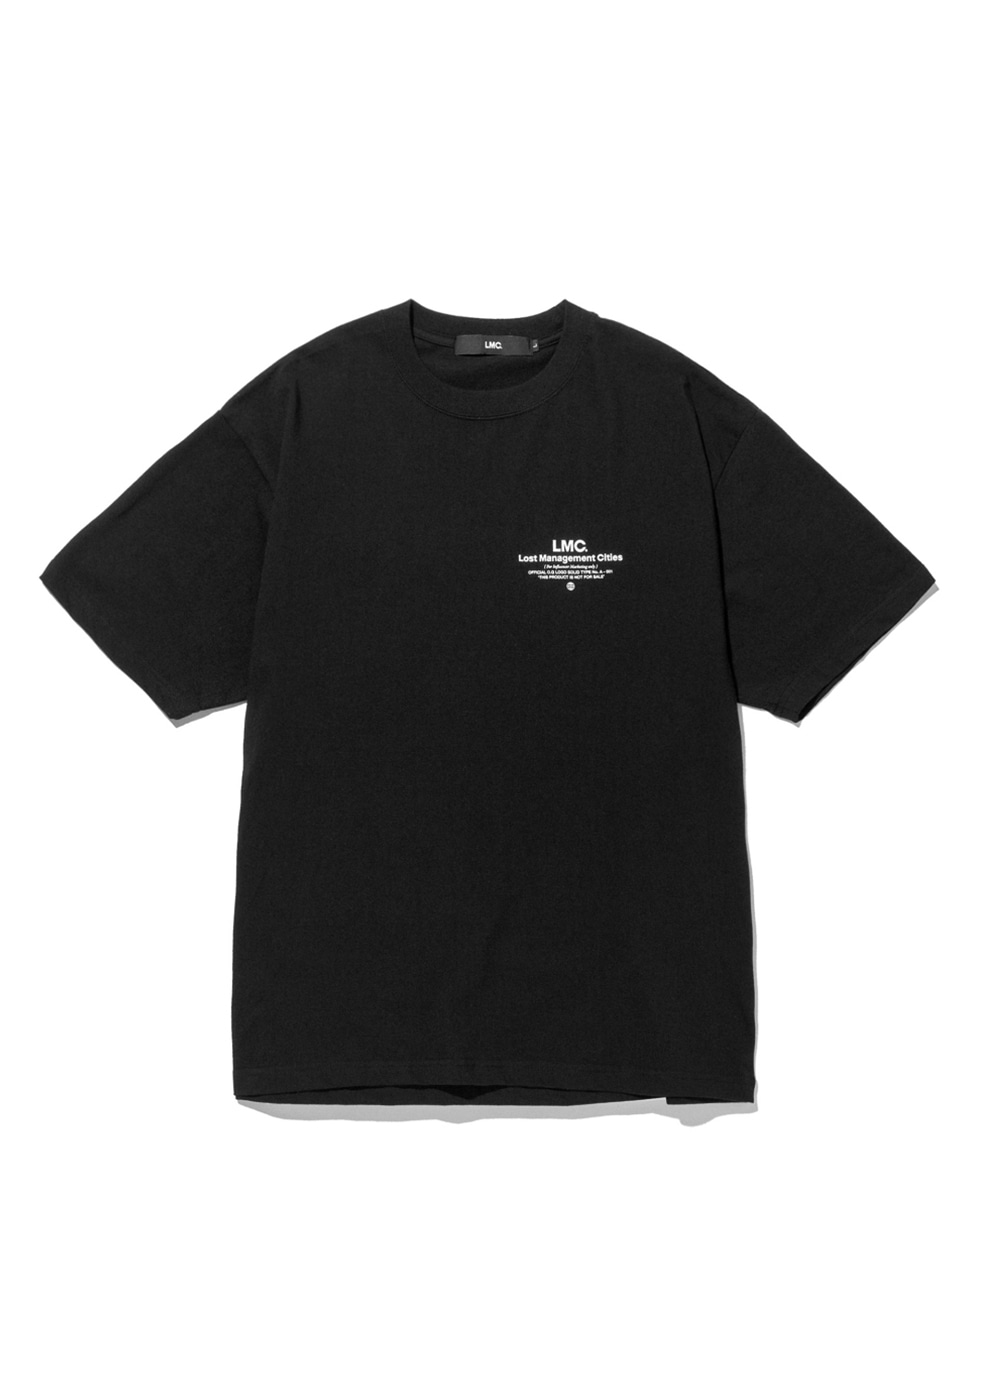 LMC INFLUENCER TEE black